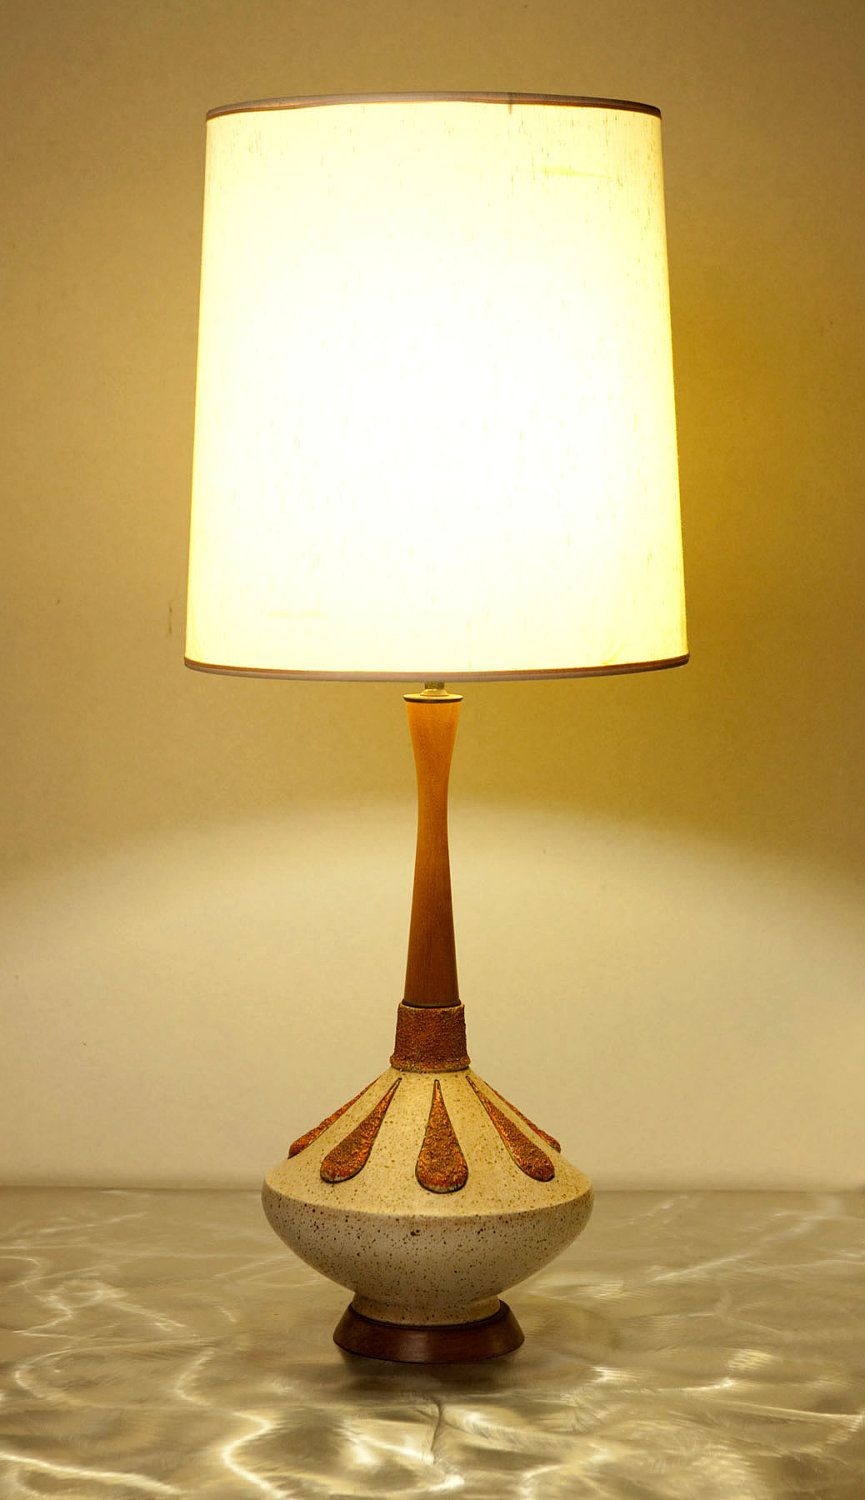 Mid century modern table lamp design pinterest mid century mid century modern table lamp geotapseo Image collections